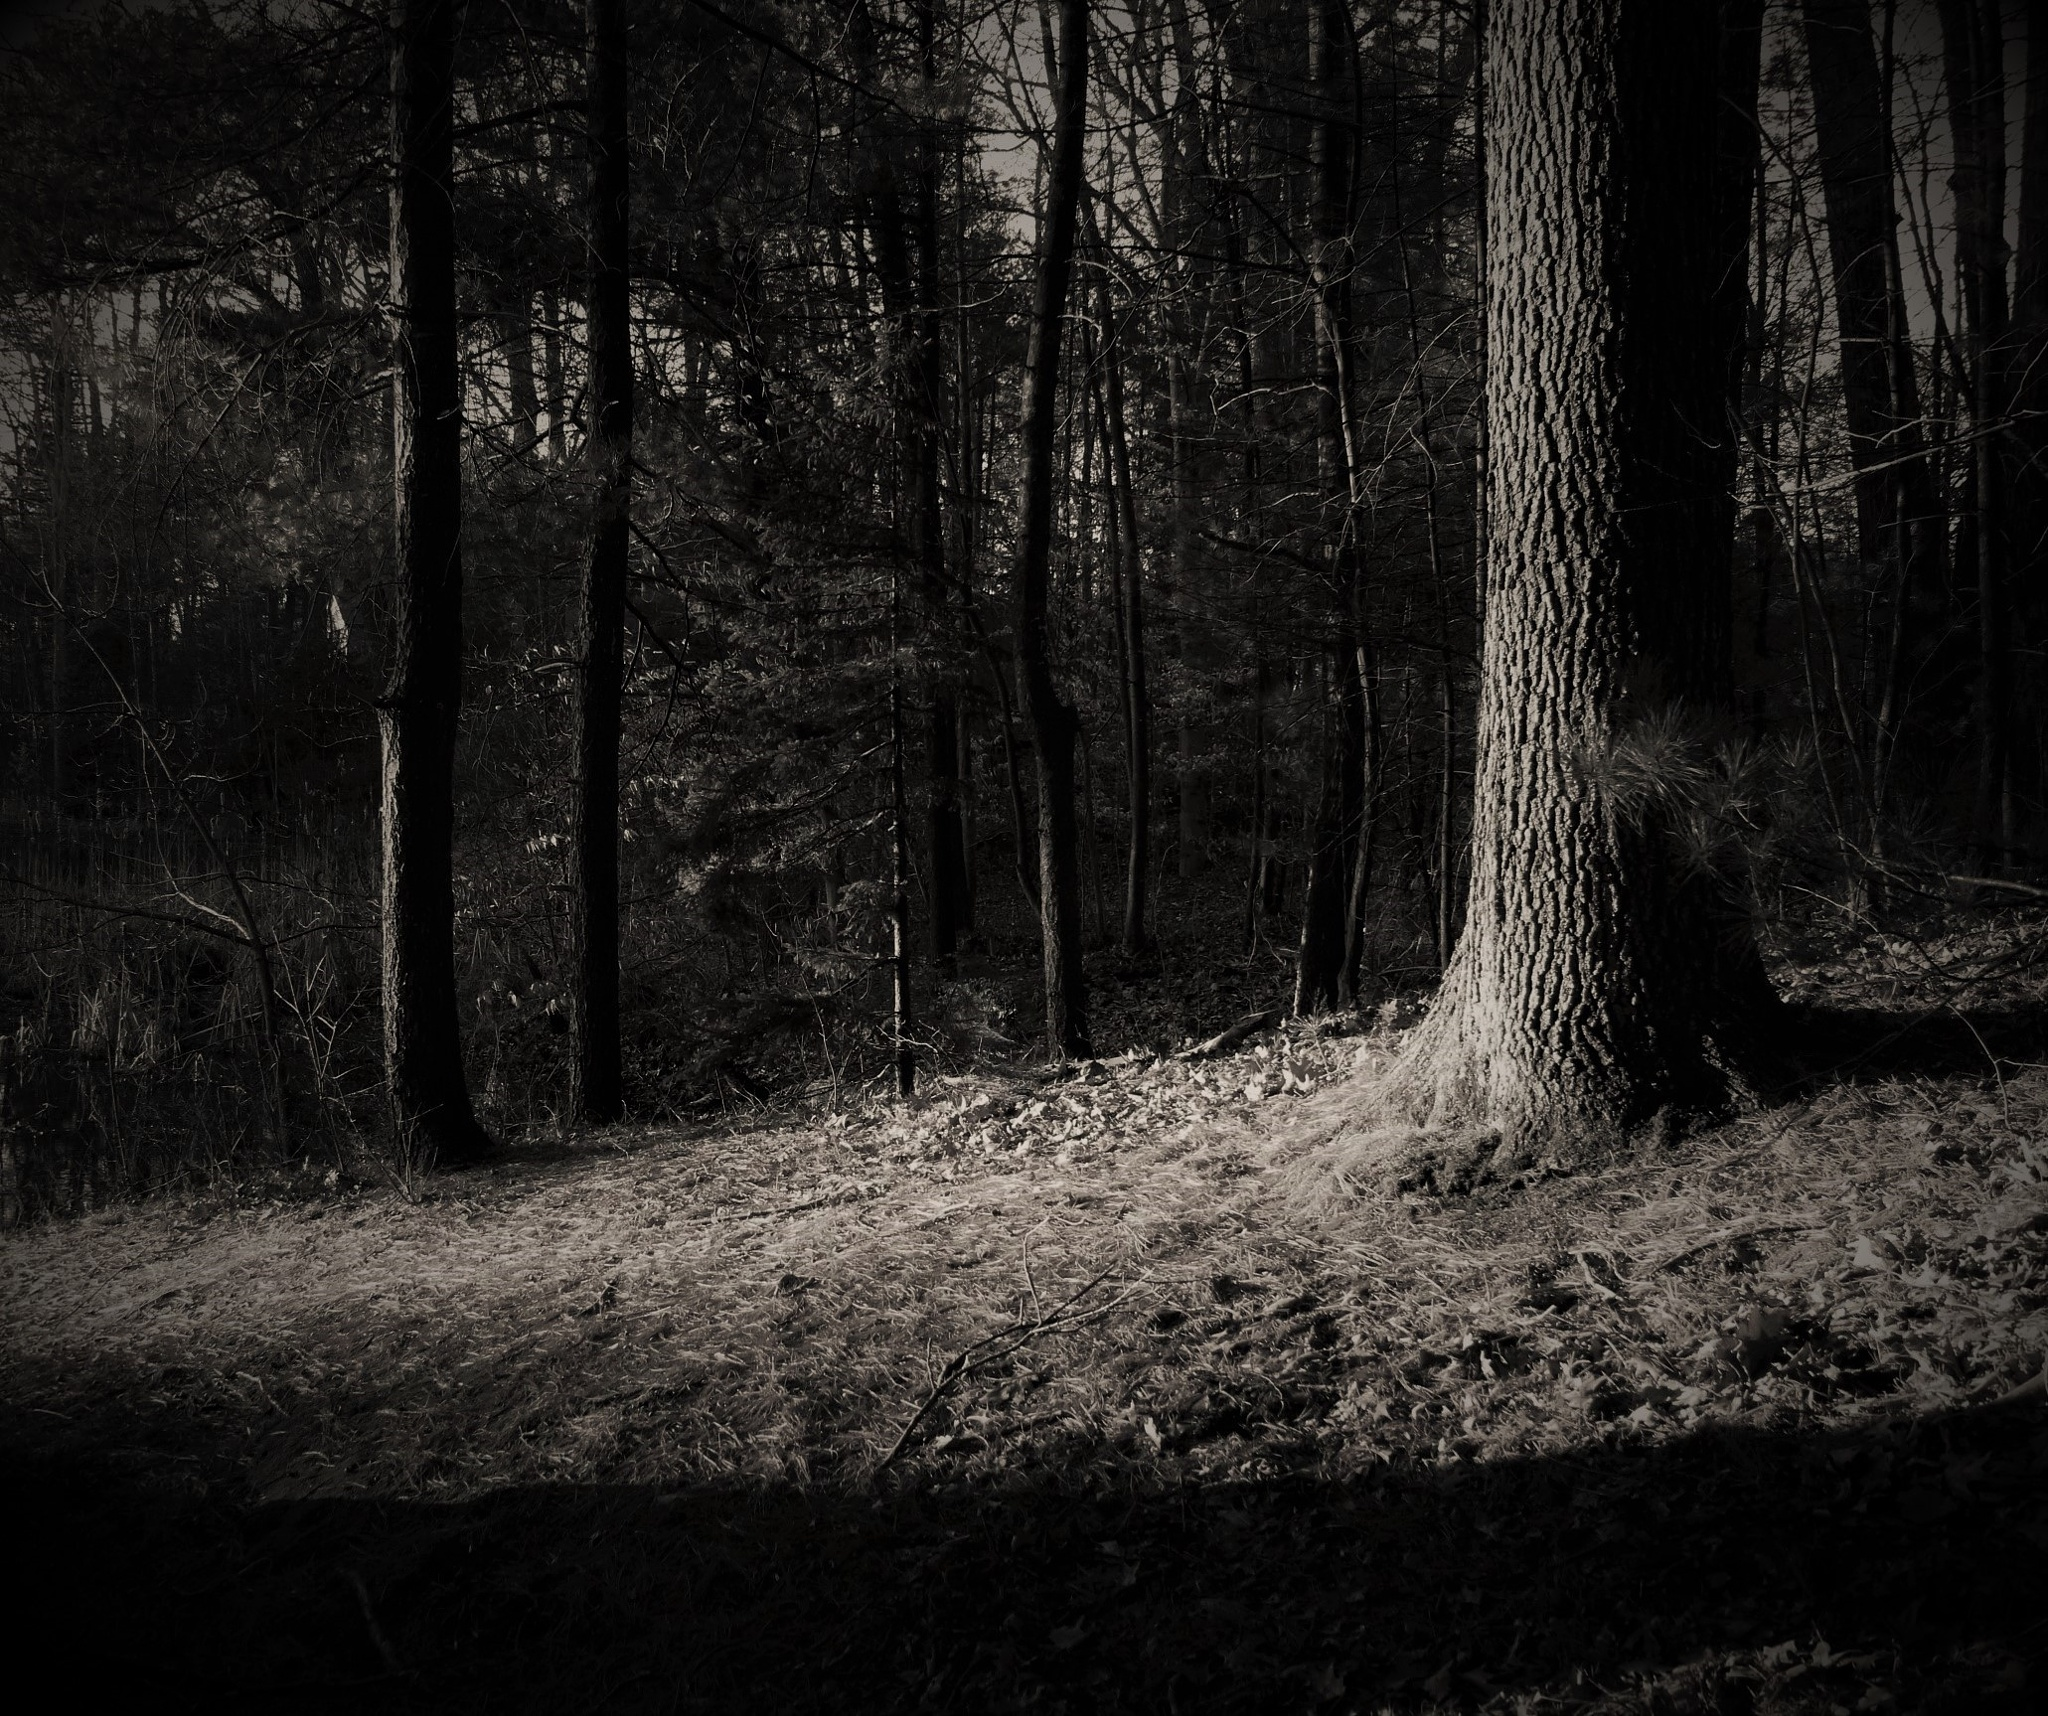 One Tree Among Trees by debbie.lamontesnyder